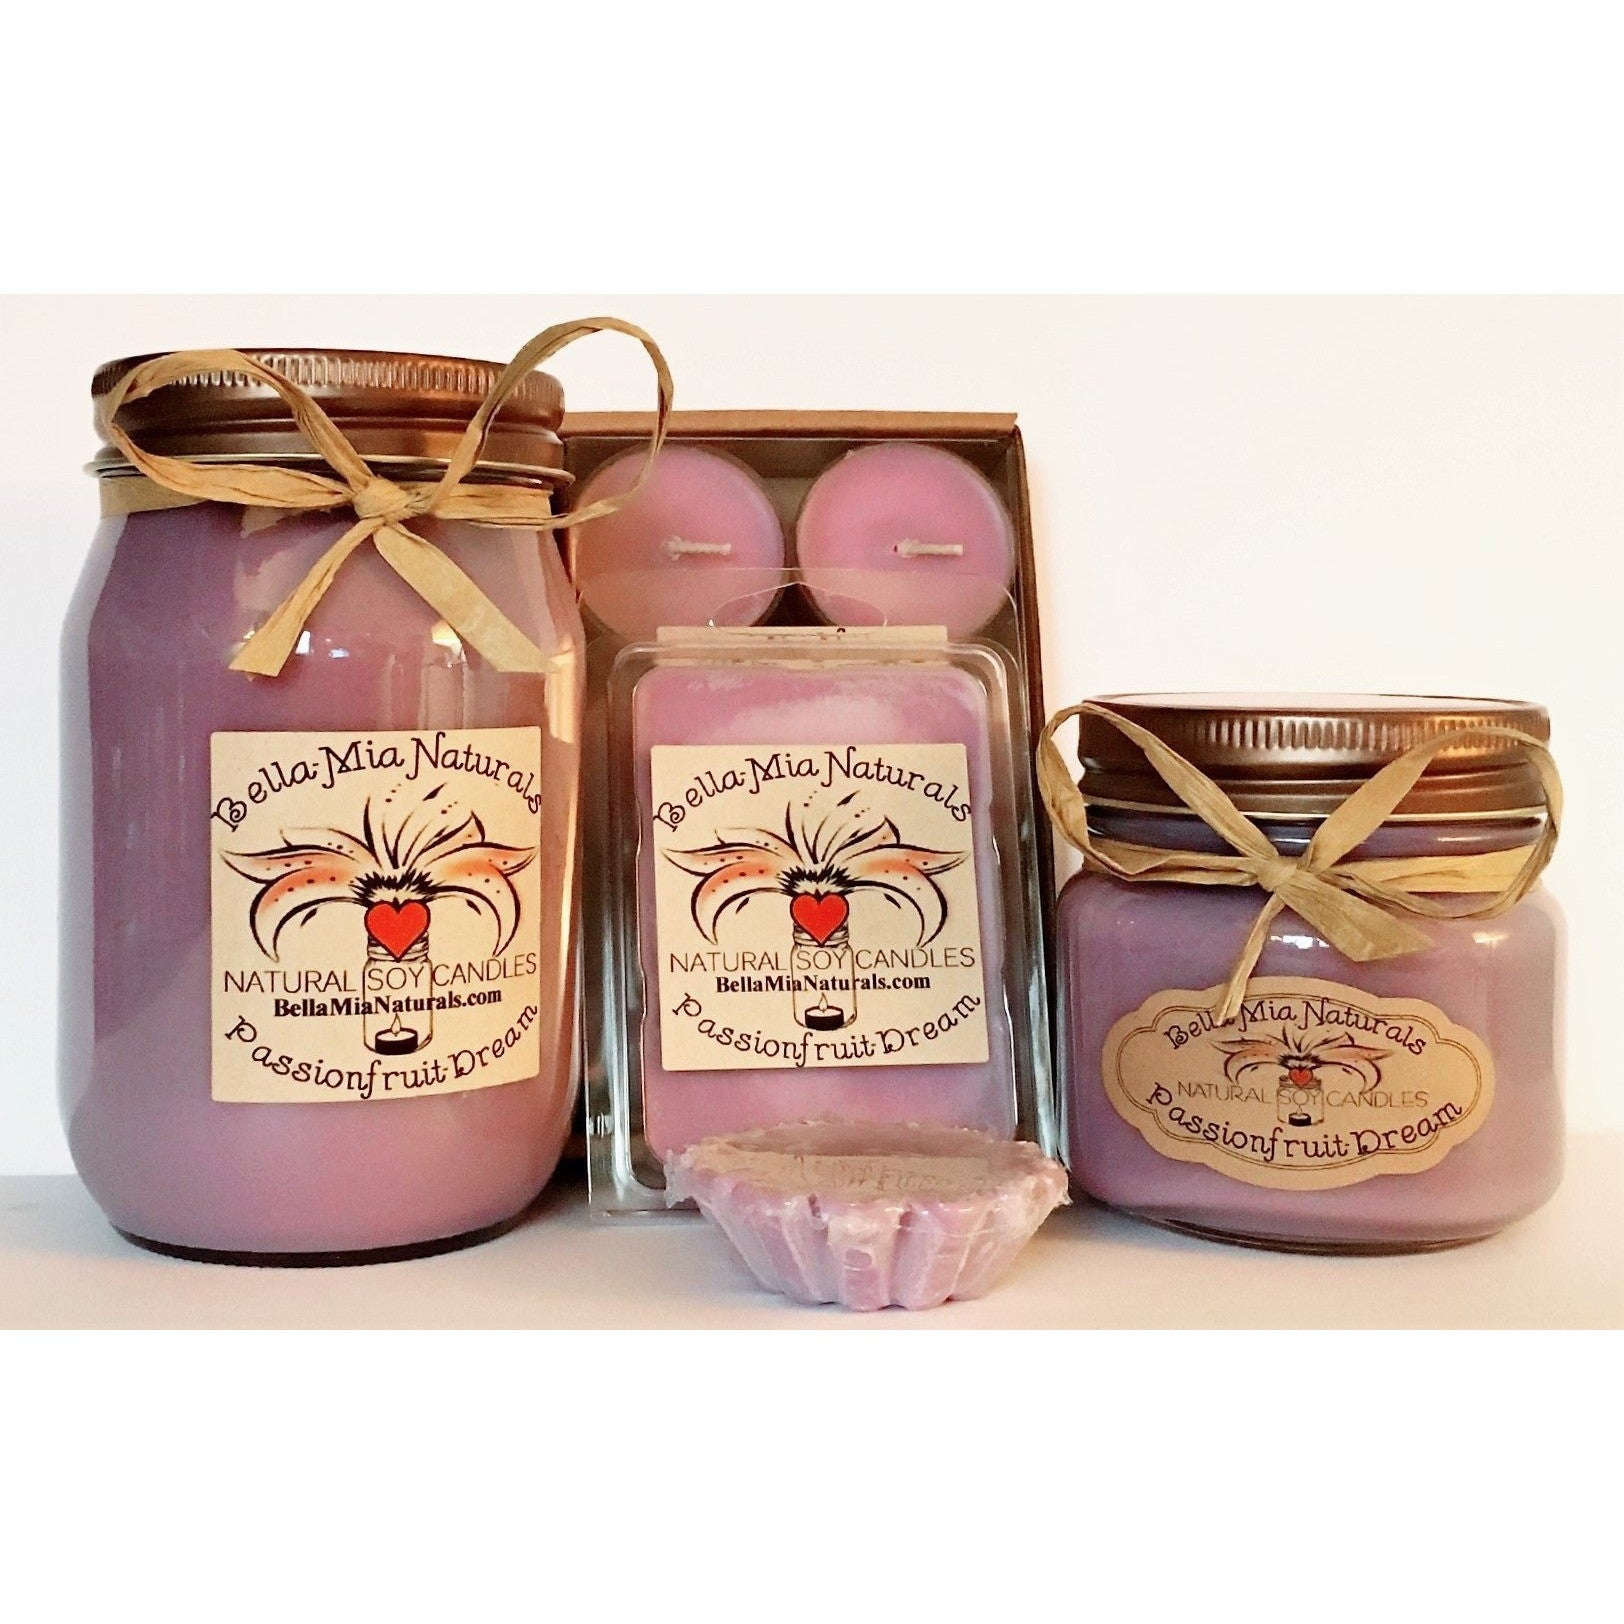 Passionfruit-Dream Natural Hand Poured Soy Candles -  - Bella-Mia Naturals All Natural Soy Candles & Lip Balms - 1